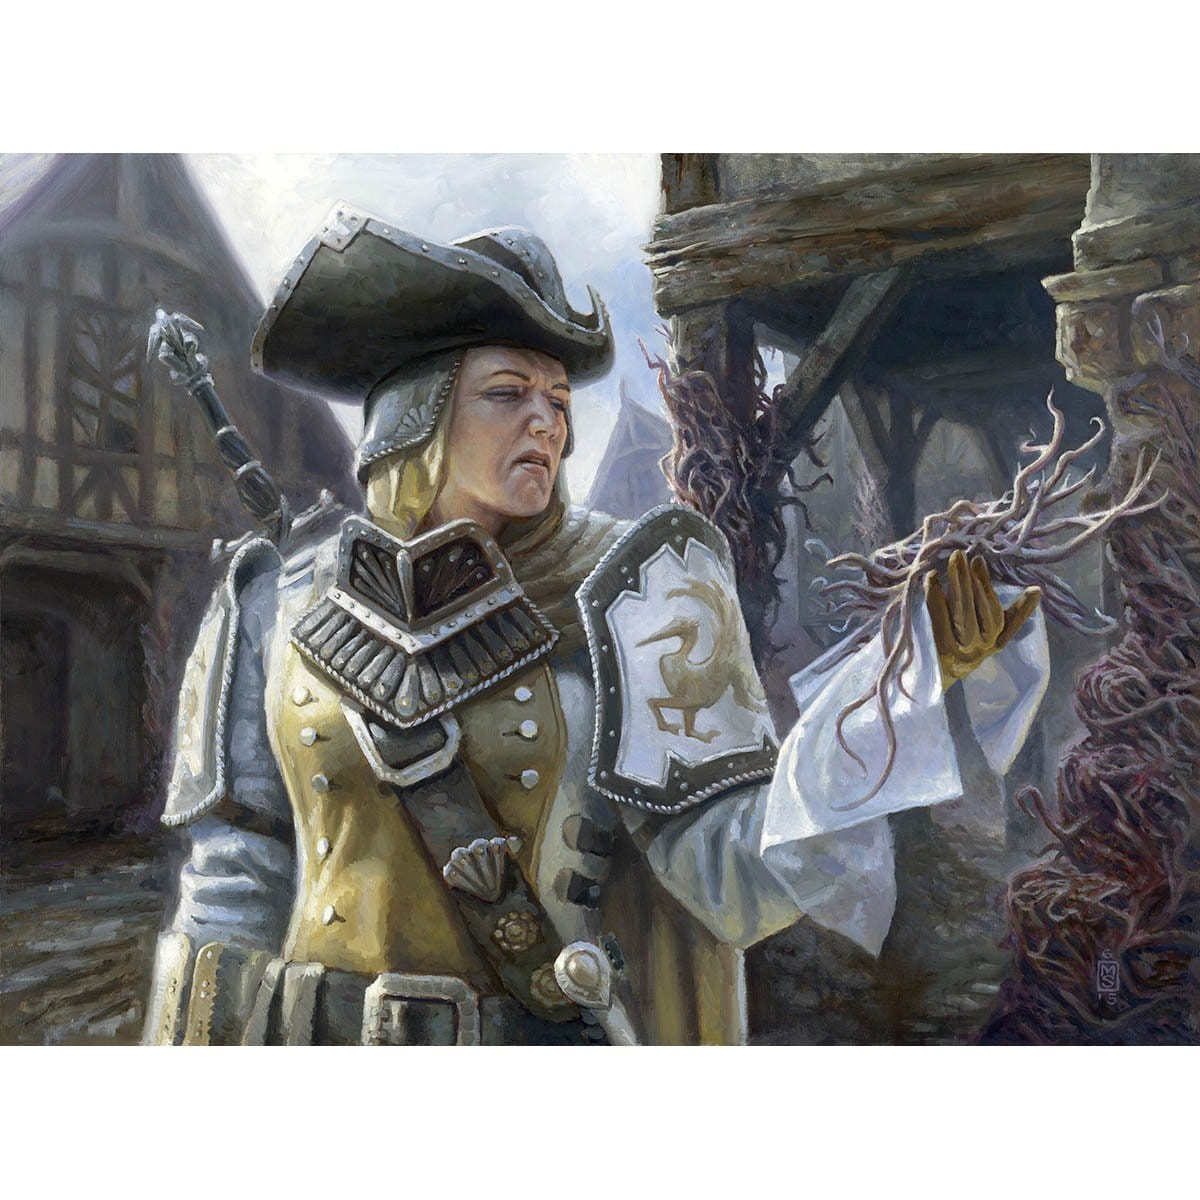 Thraben Inspector Print - Print - Original Magic Art - Accessories for Magic the Gathering and other card games